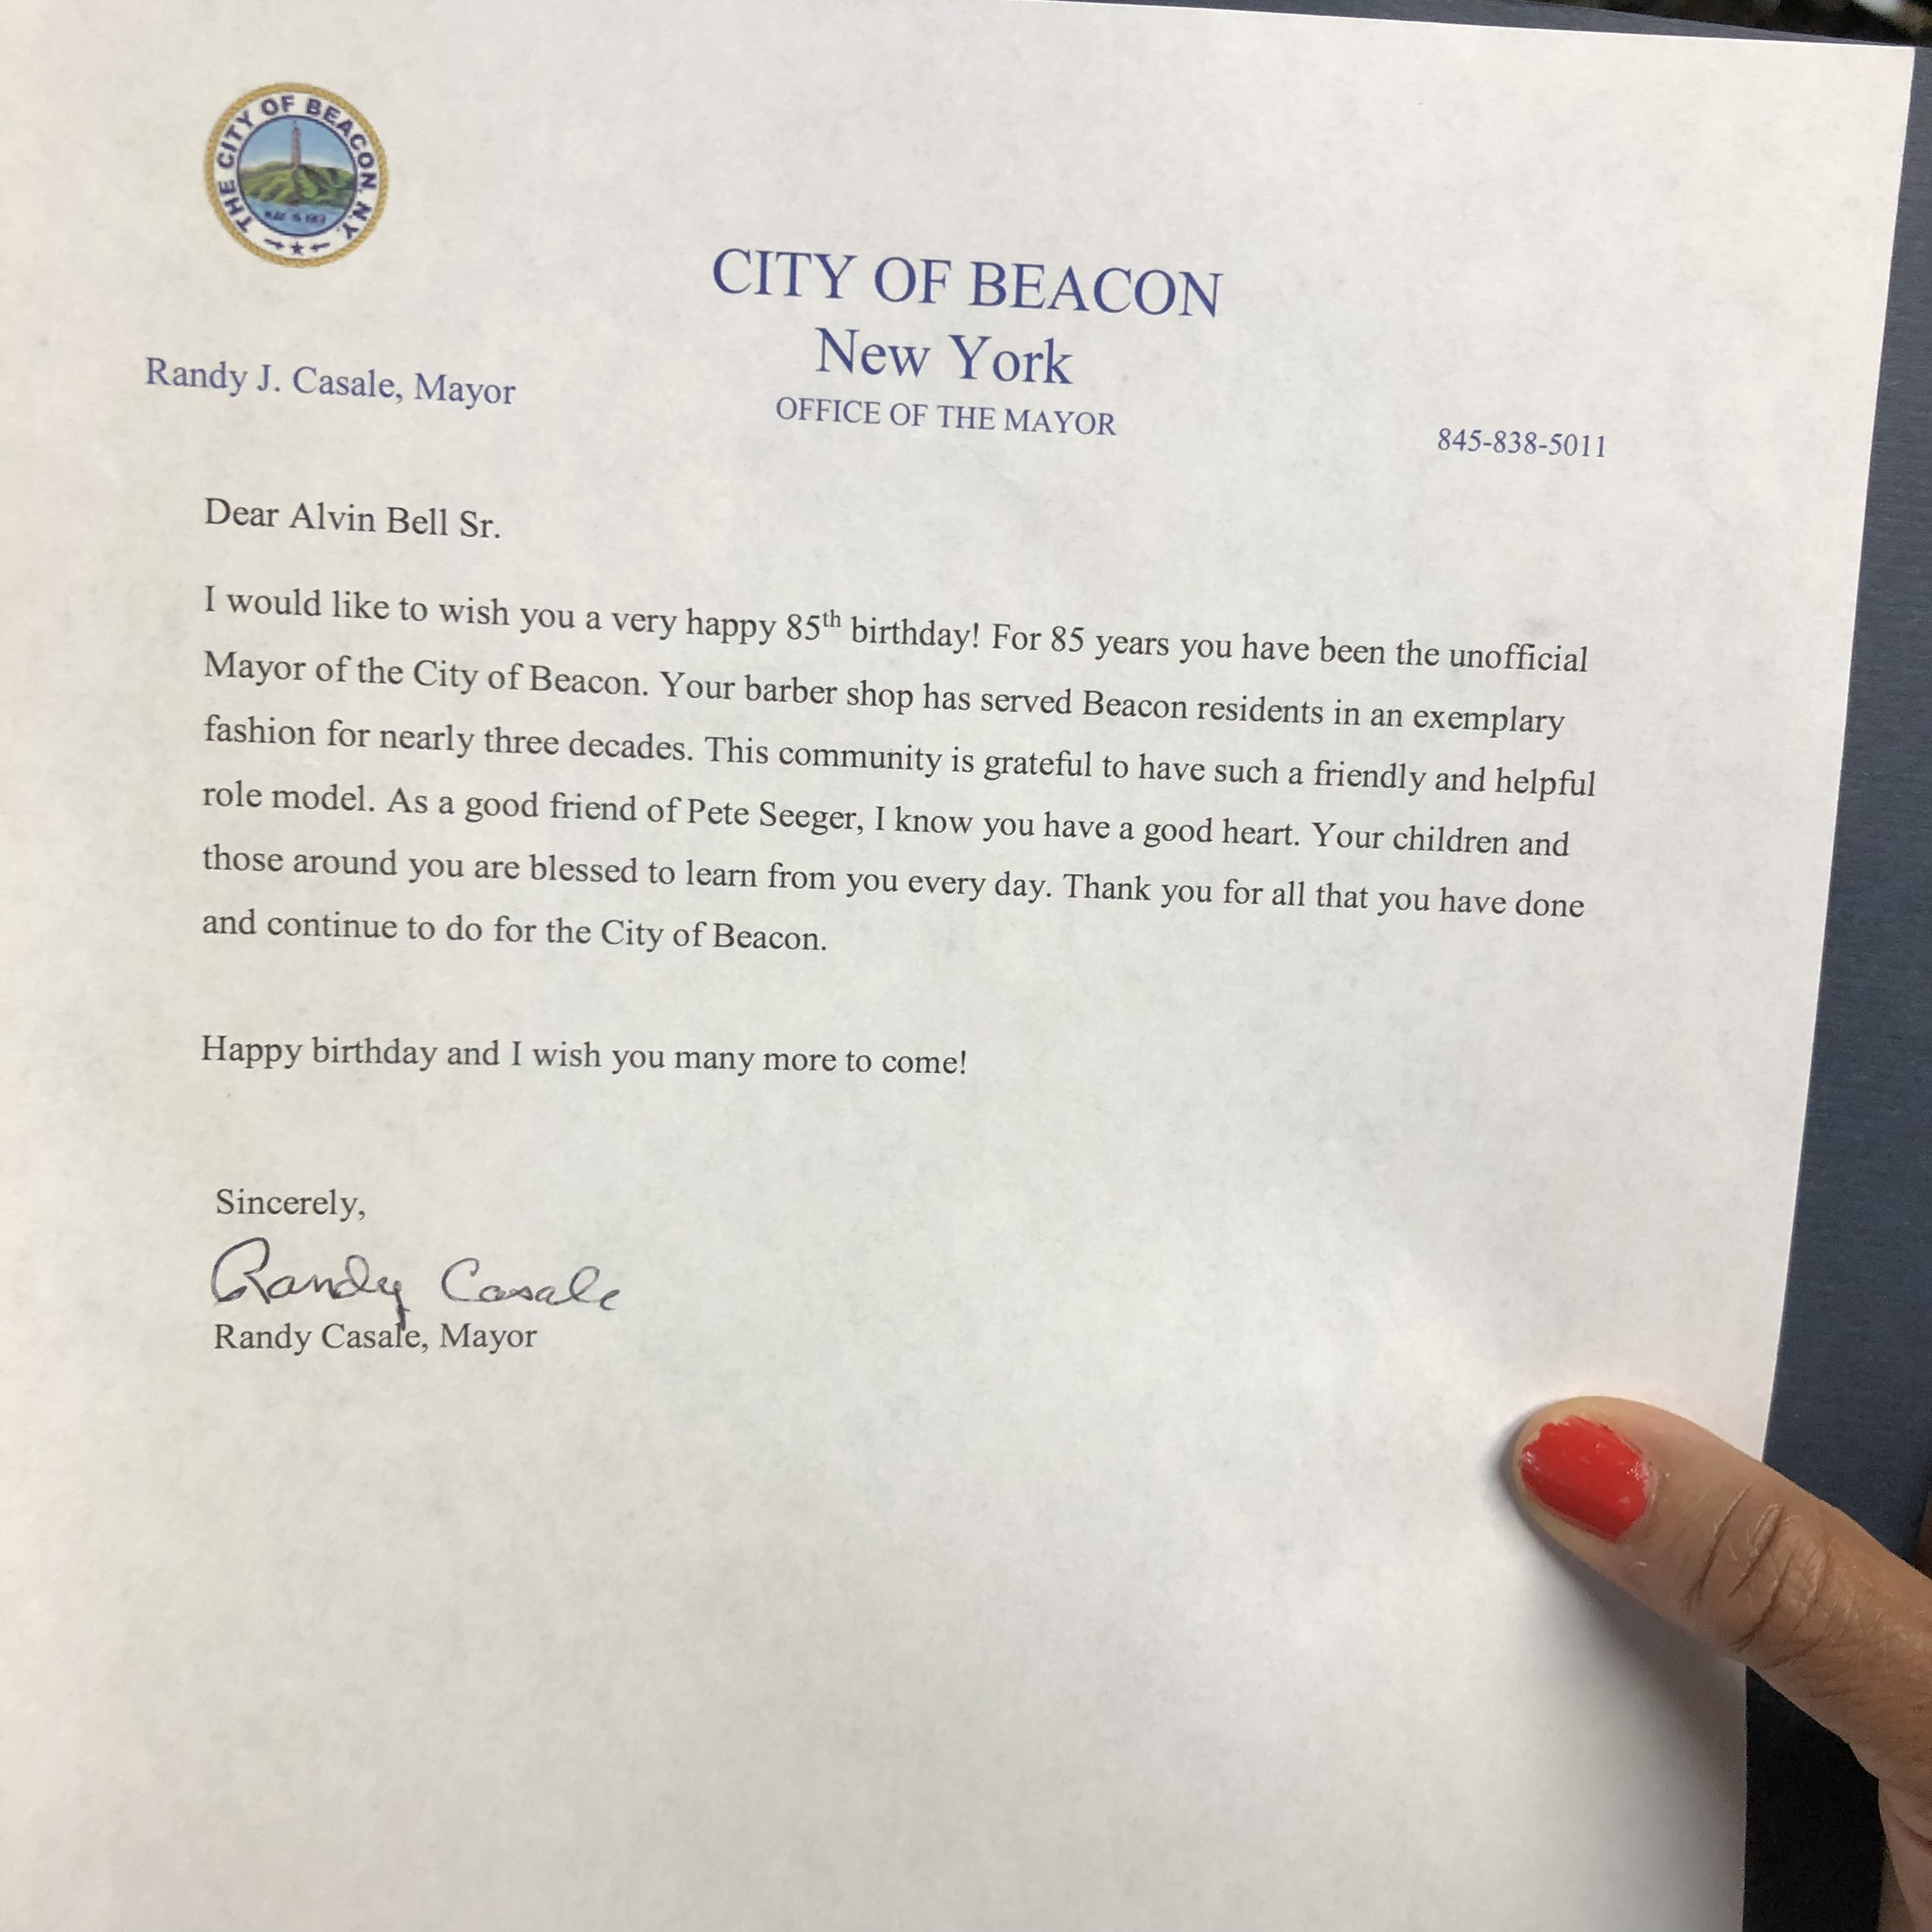 Mr Alvin Bell Letter From The Mayor 85th Birthday.jpg